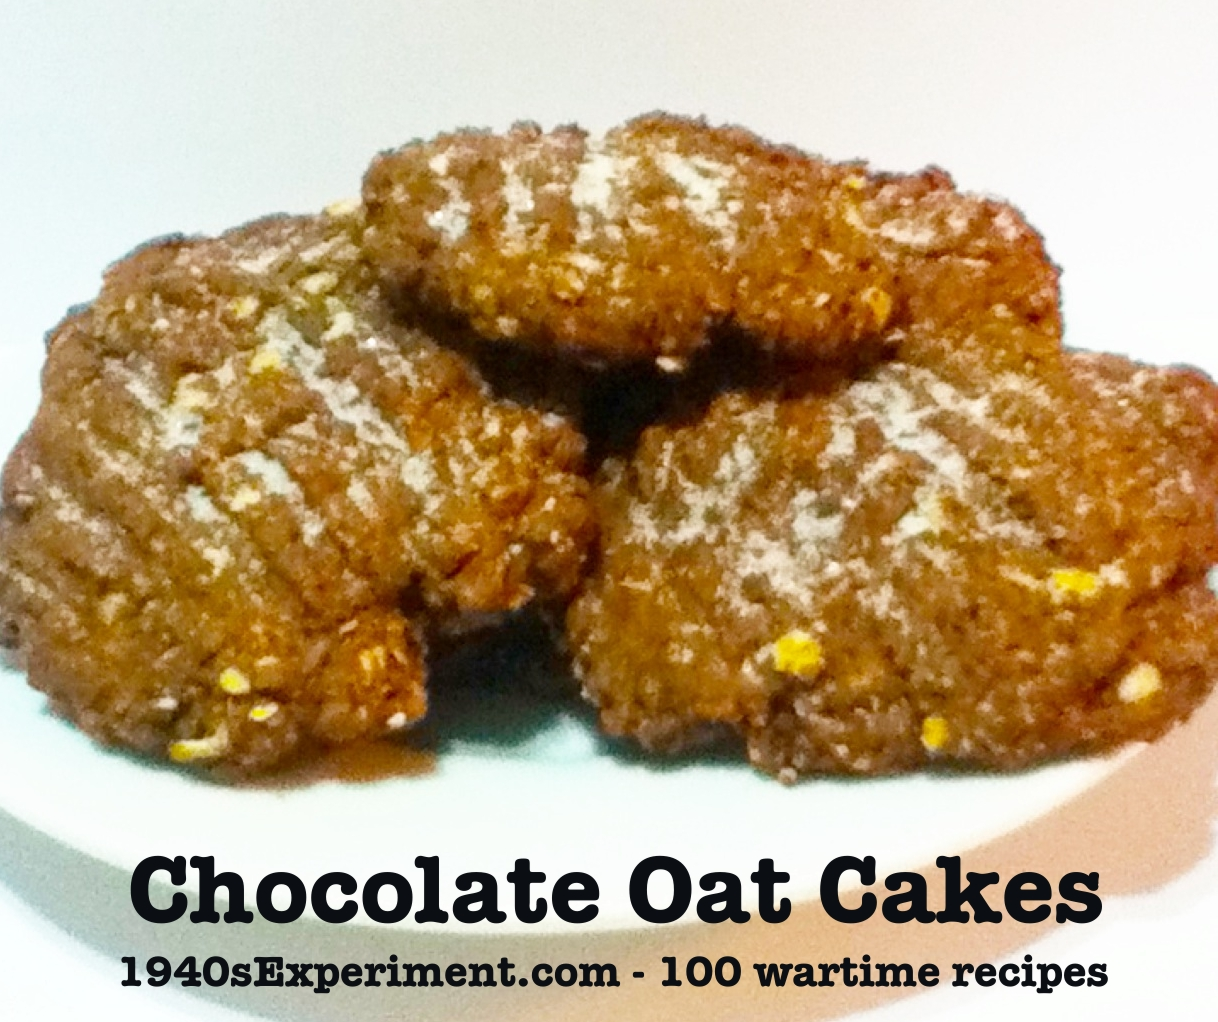 Chocolate oat cakes the 1940s experiment chocolate oat cakes no 97 forumfinder Image collections